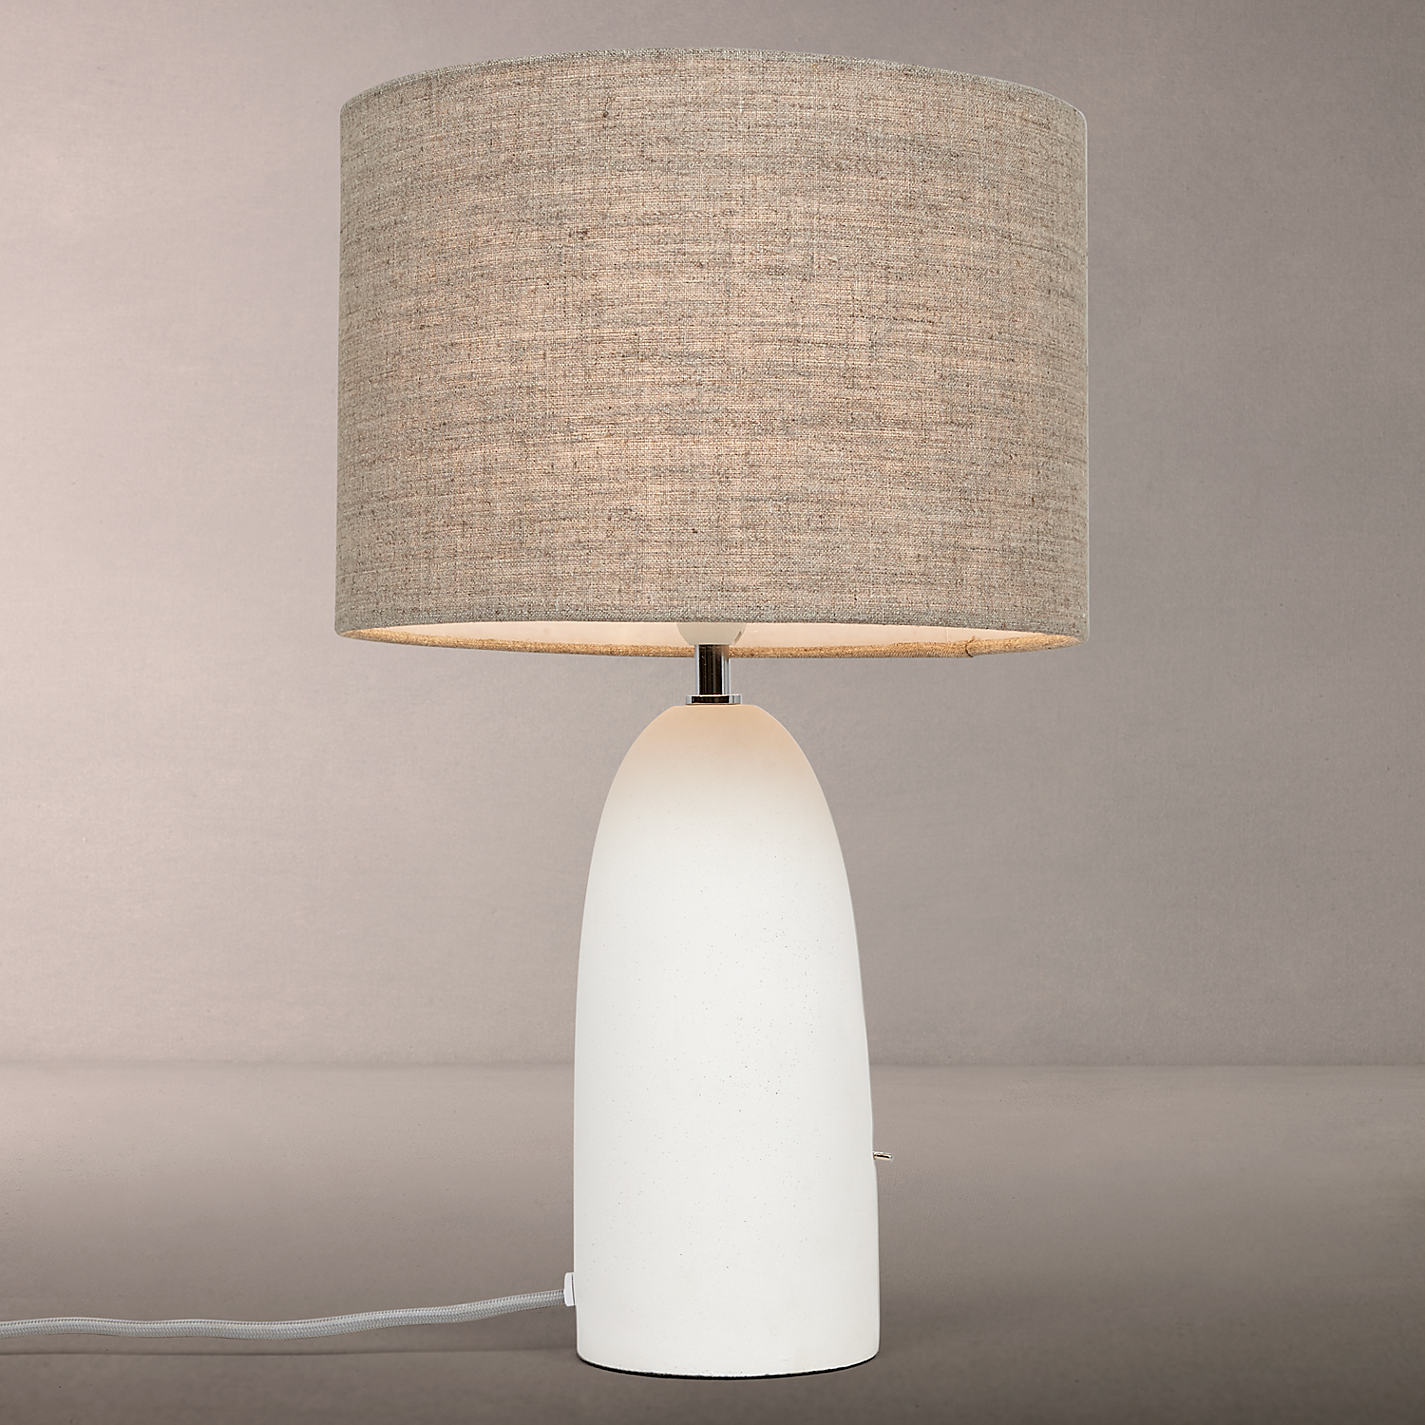 Buy john lewis meryl large concrete table lamp white john lewis buy john lewis meryl large concrete table lamp white online at johnlewis geotapseo Choice Image